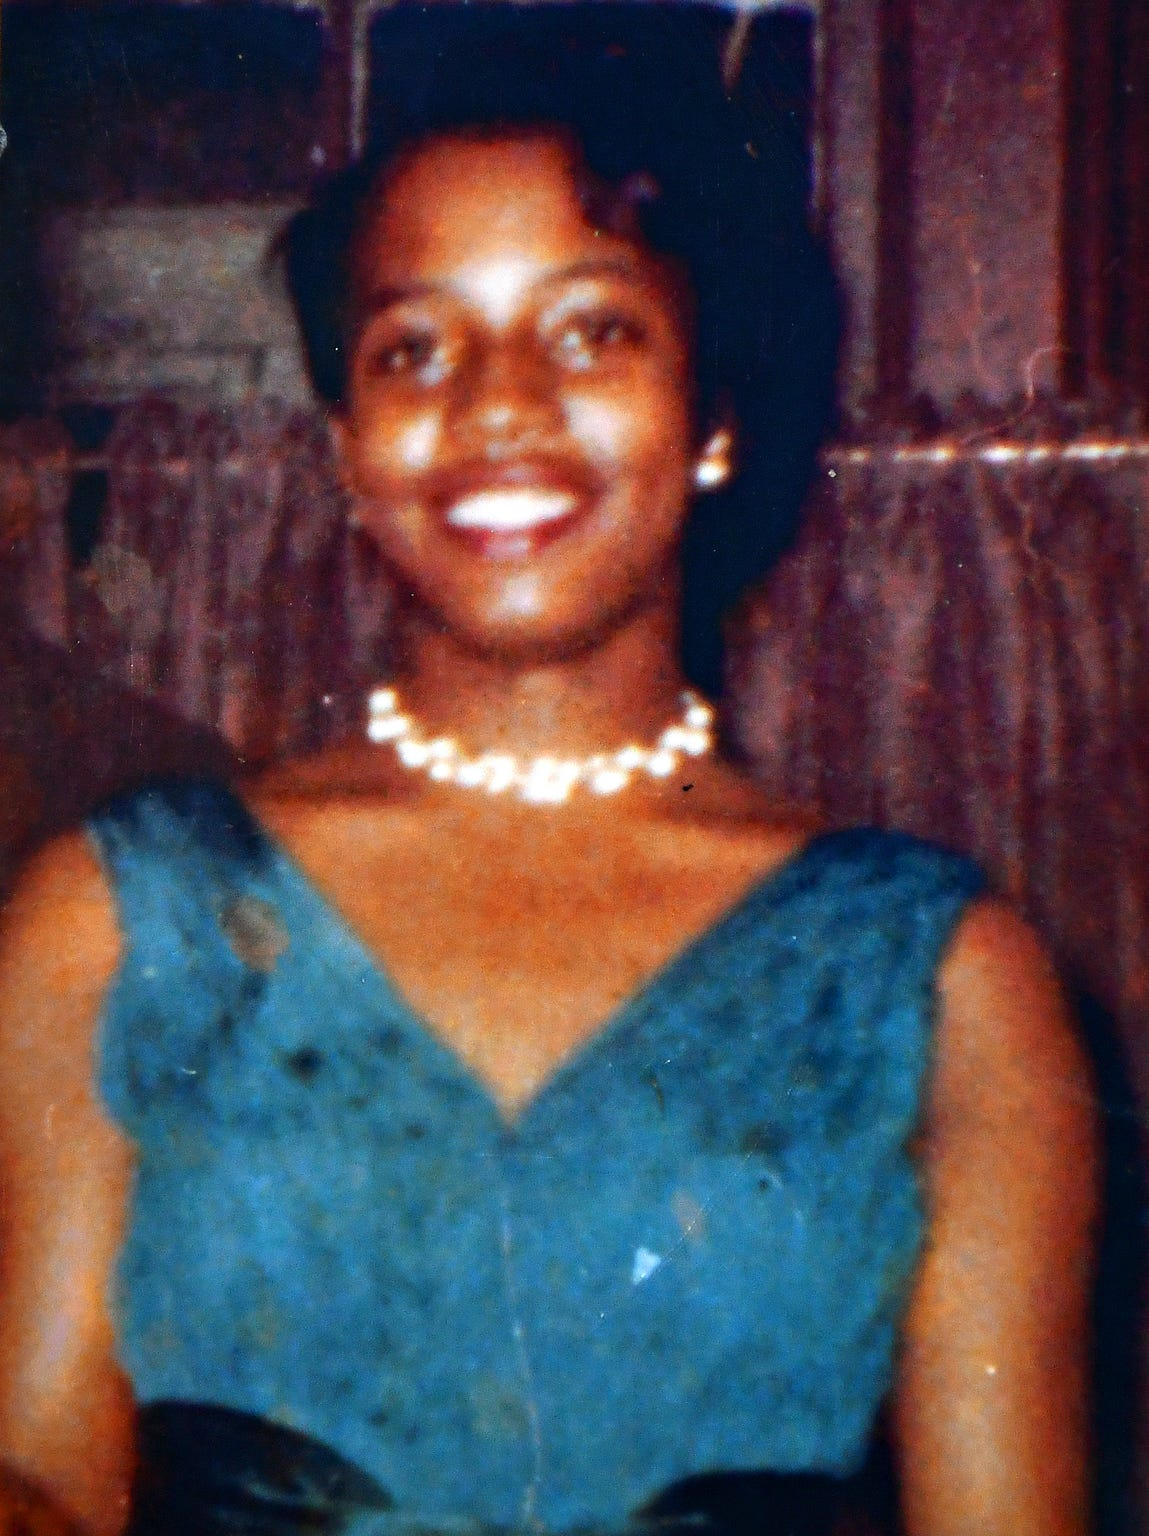 Lillie Belle Allen, 27, a mother of two, was shot and killed while visiting family in York during the York Riots on July 21, 1969.  Submitted photo